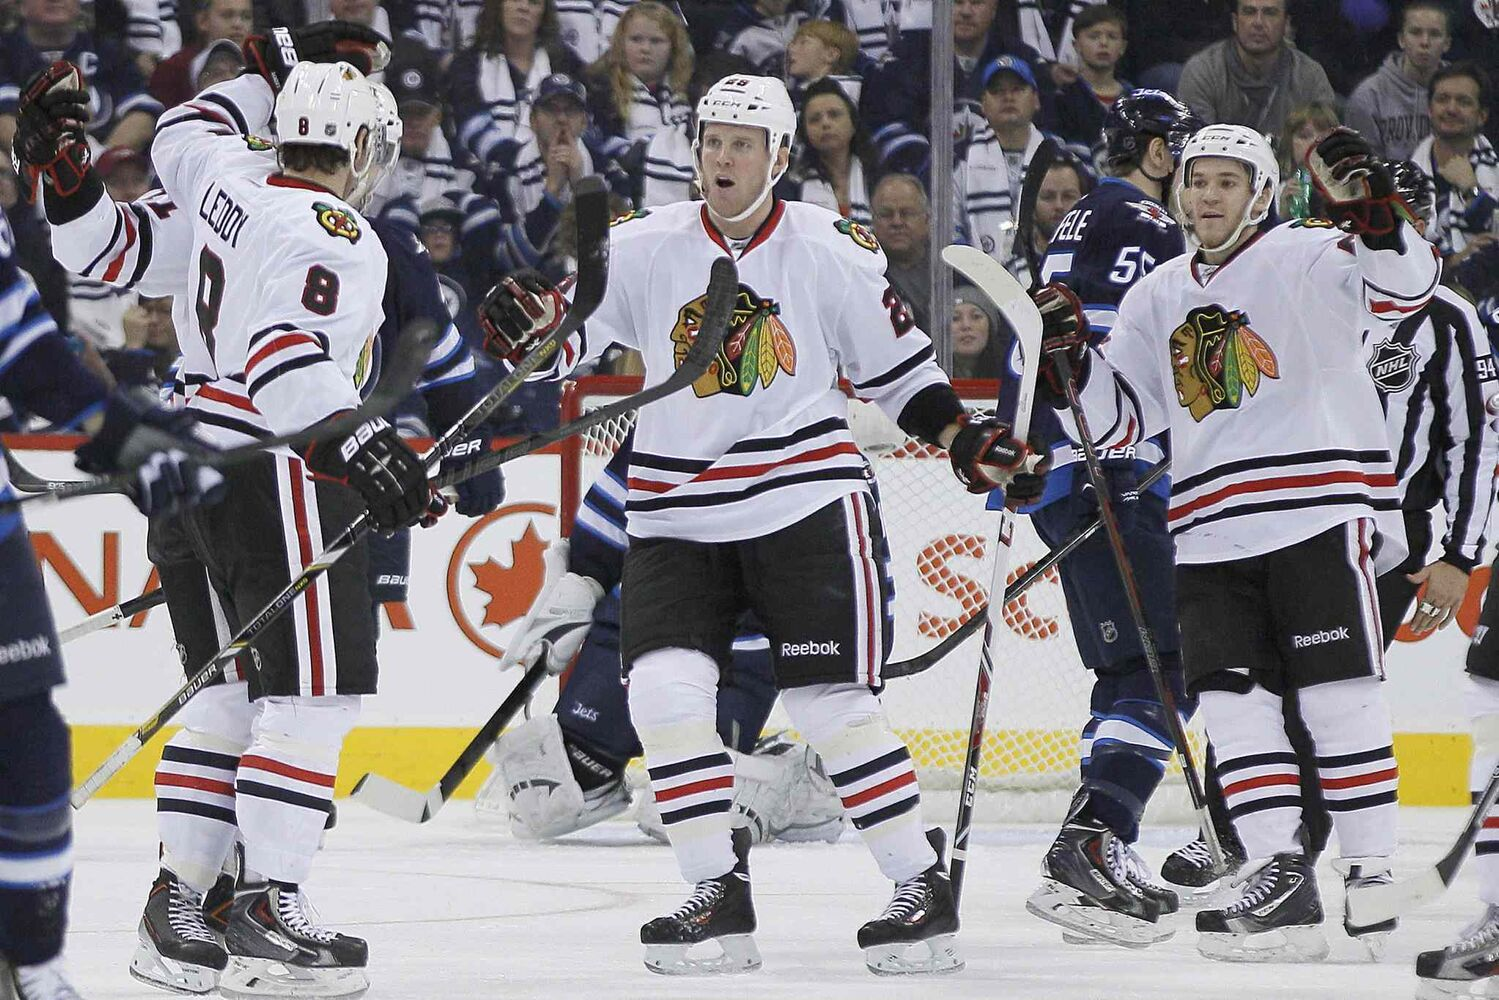 Chicago Blackhawks' Bryan Bickell (centre) and Andrew Shaw (right) celebrate Nick Leddy's goal against the Winnipeg Jets during the second period.